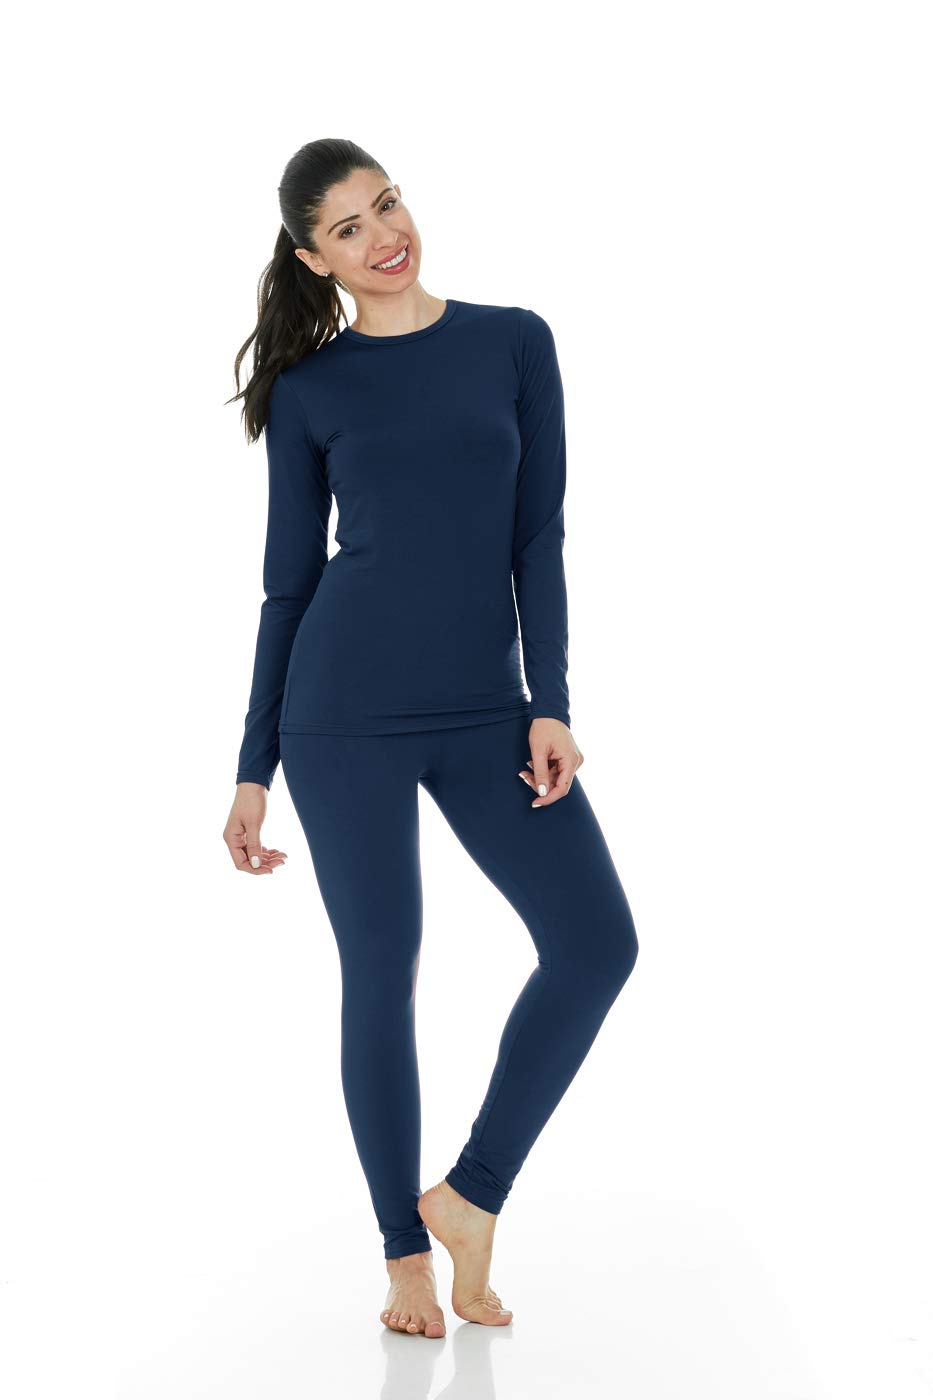 Thermajane Women's Ultra Soft Thermal Underwear Long Johns Set with Fleece Lined (XX-Small, Navy)